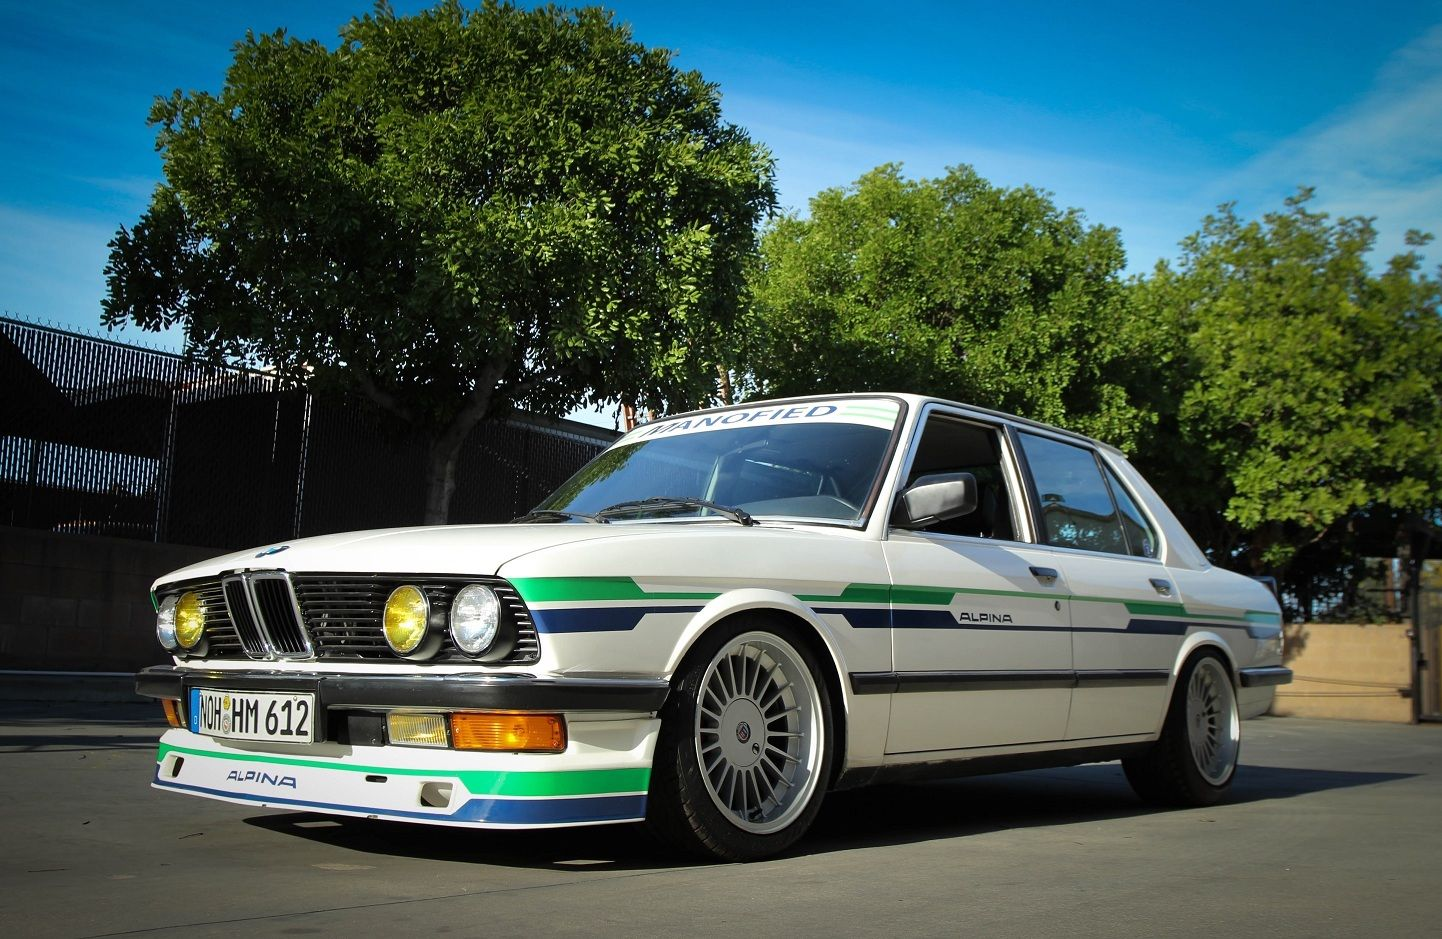 1988 Bmw 535i For Sale 1988 bmw 535i e28 alpina b9 inspired by manofied racing ser 012 1988 ...